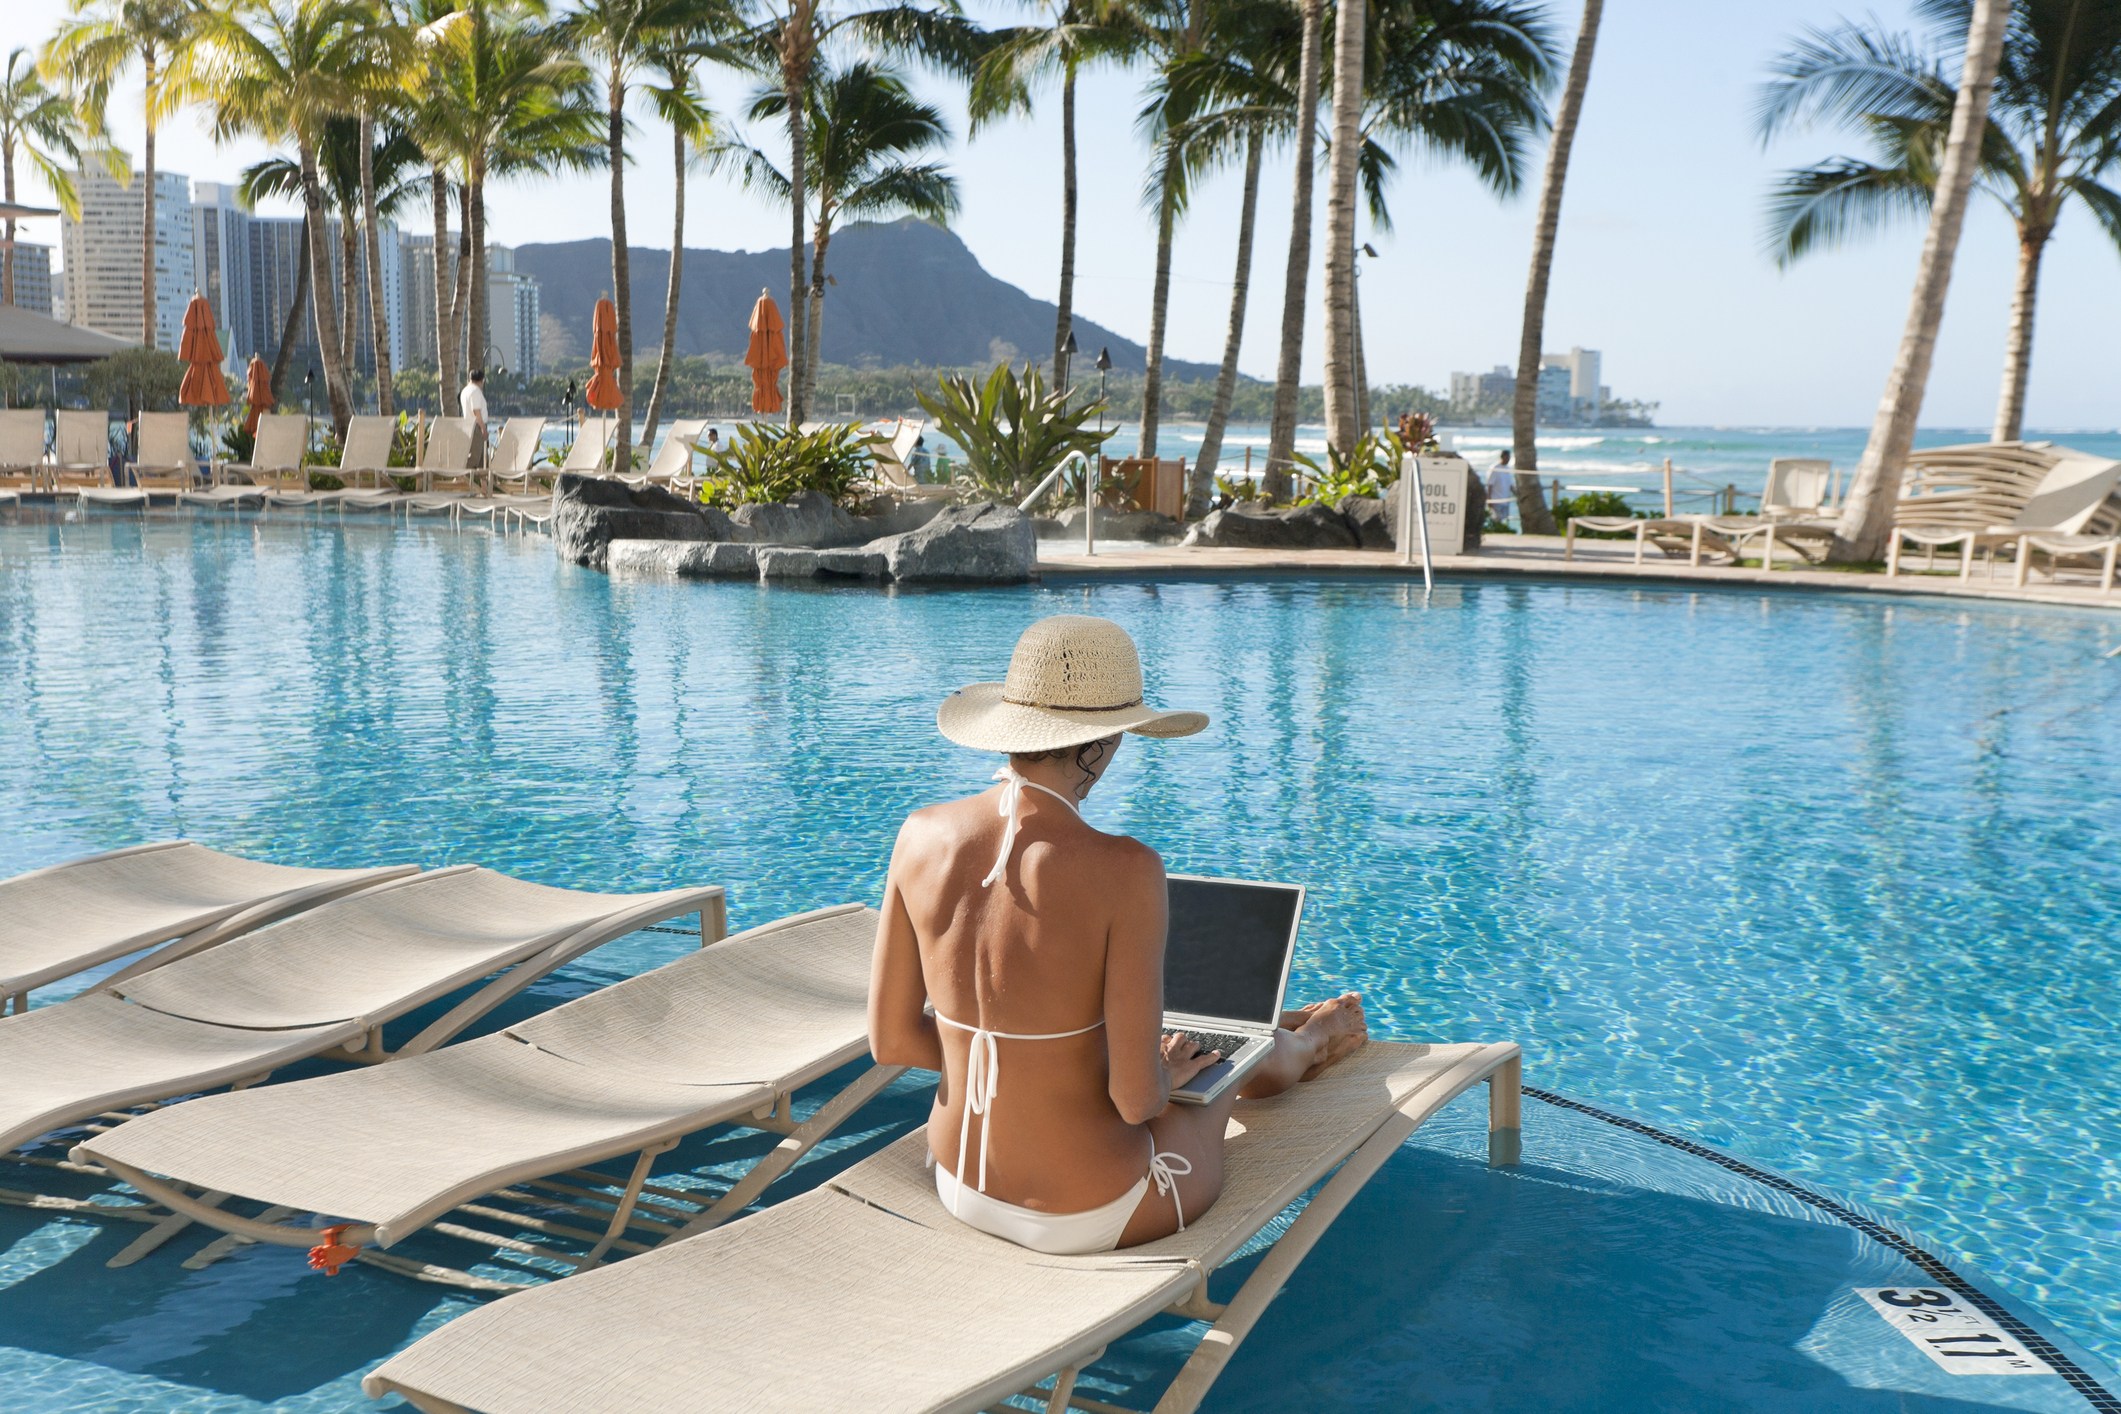 Many travellers on holidays find it hard to switch off online. Image: Monica and Michael Sweet